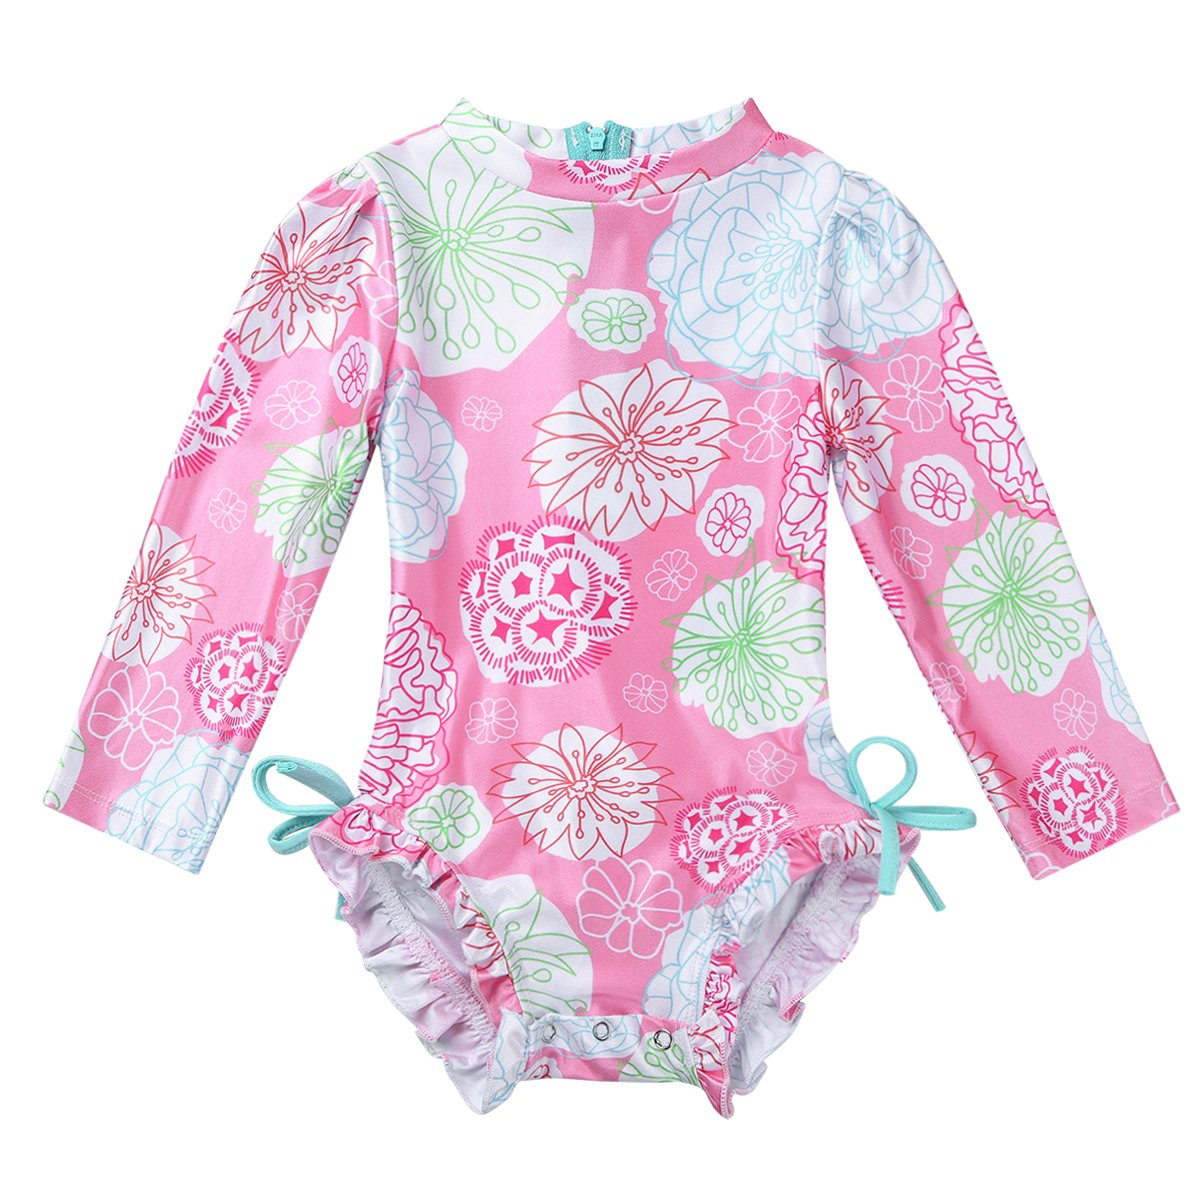 dPois Infant Baby Girls' One-Piece Long Sleeves Floral Rash Guard Ruffles Swimsuit Swimwear with Back Zipper